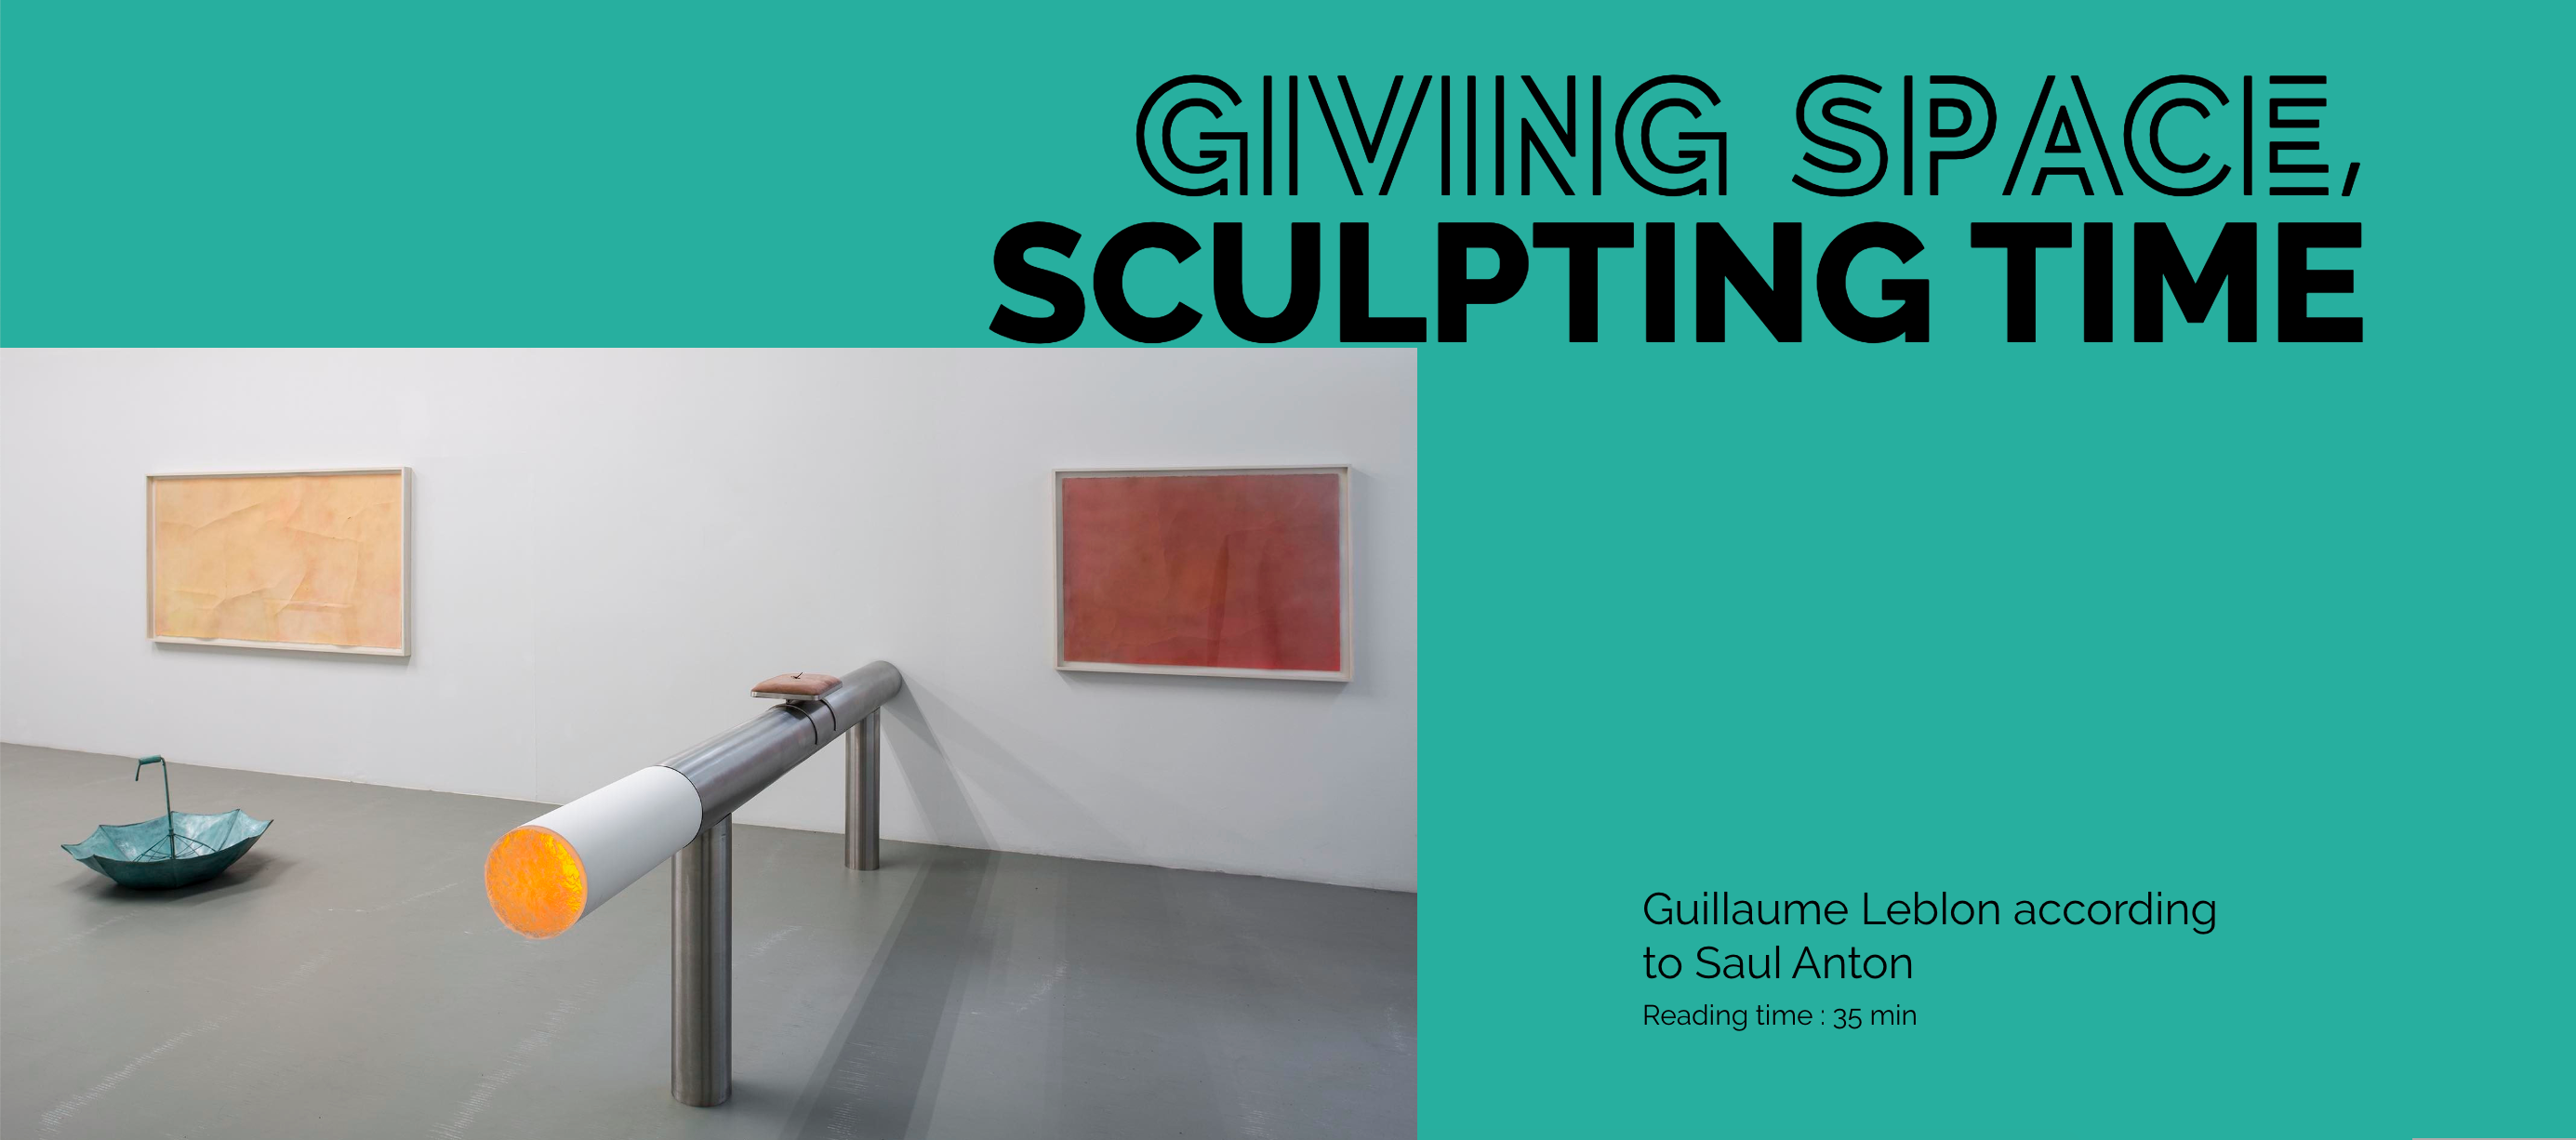 Guillaume Leblon according to Saul Anton | Giving Space, Sculpting Time – TextWork